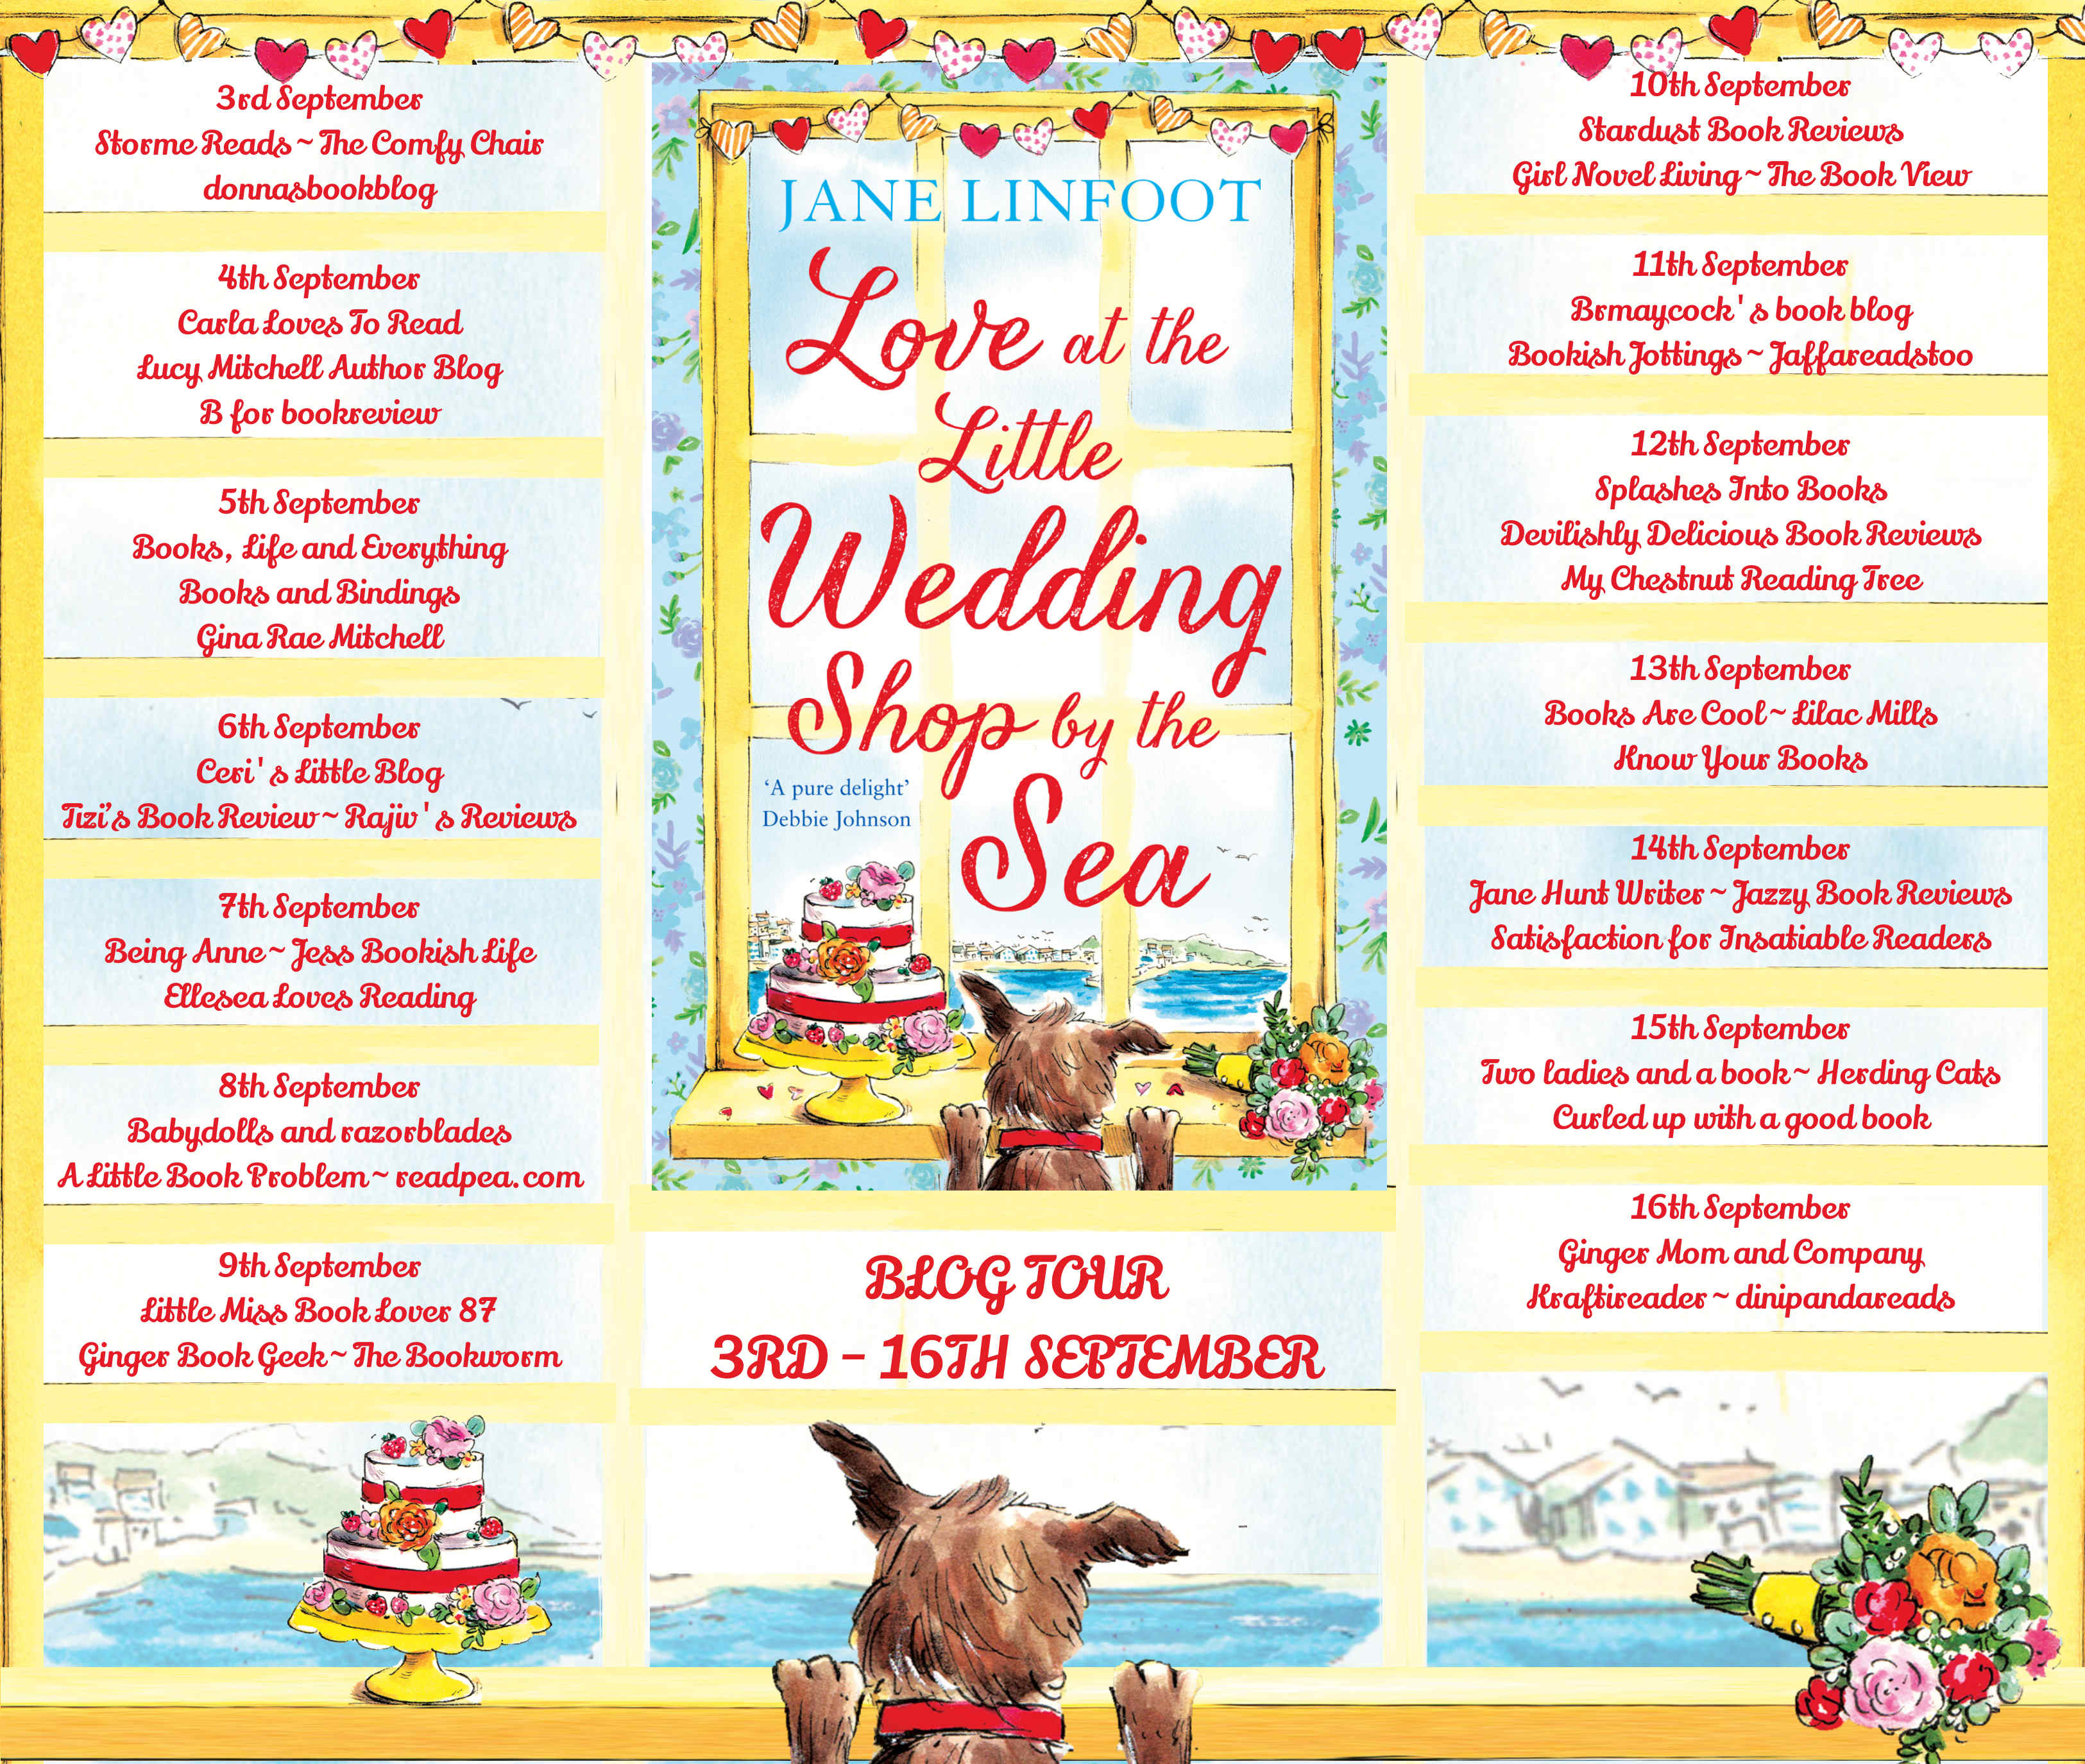 Love at the Little Wedding Shop by the Sea Full Tour Banner